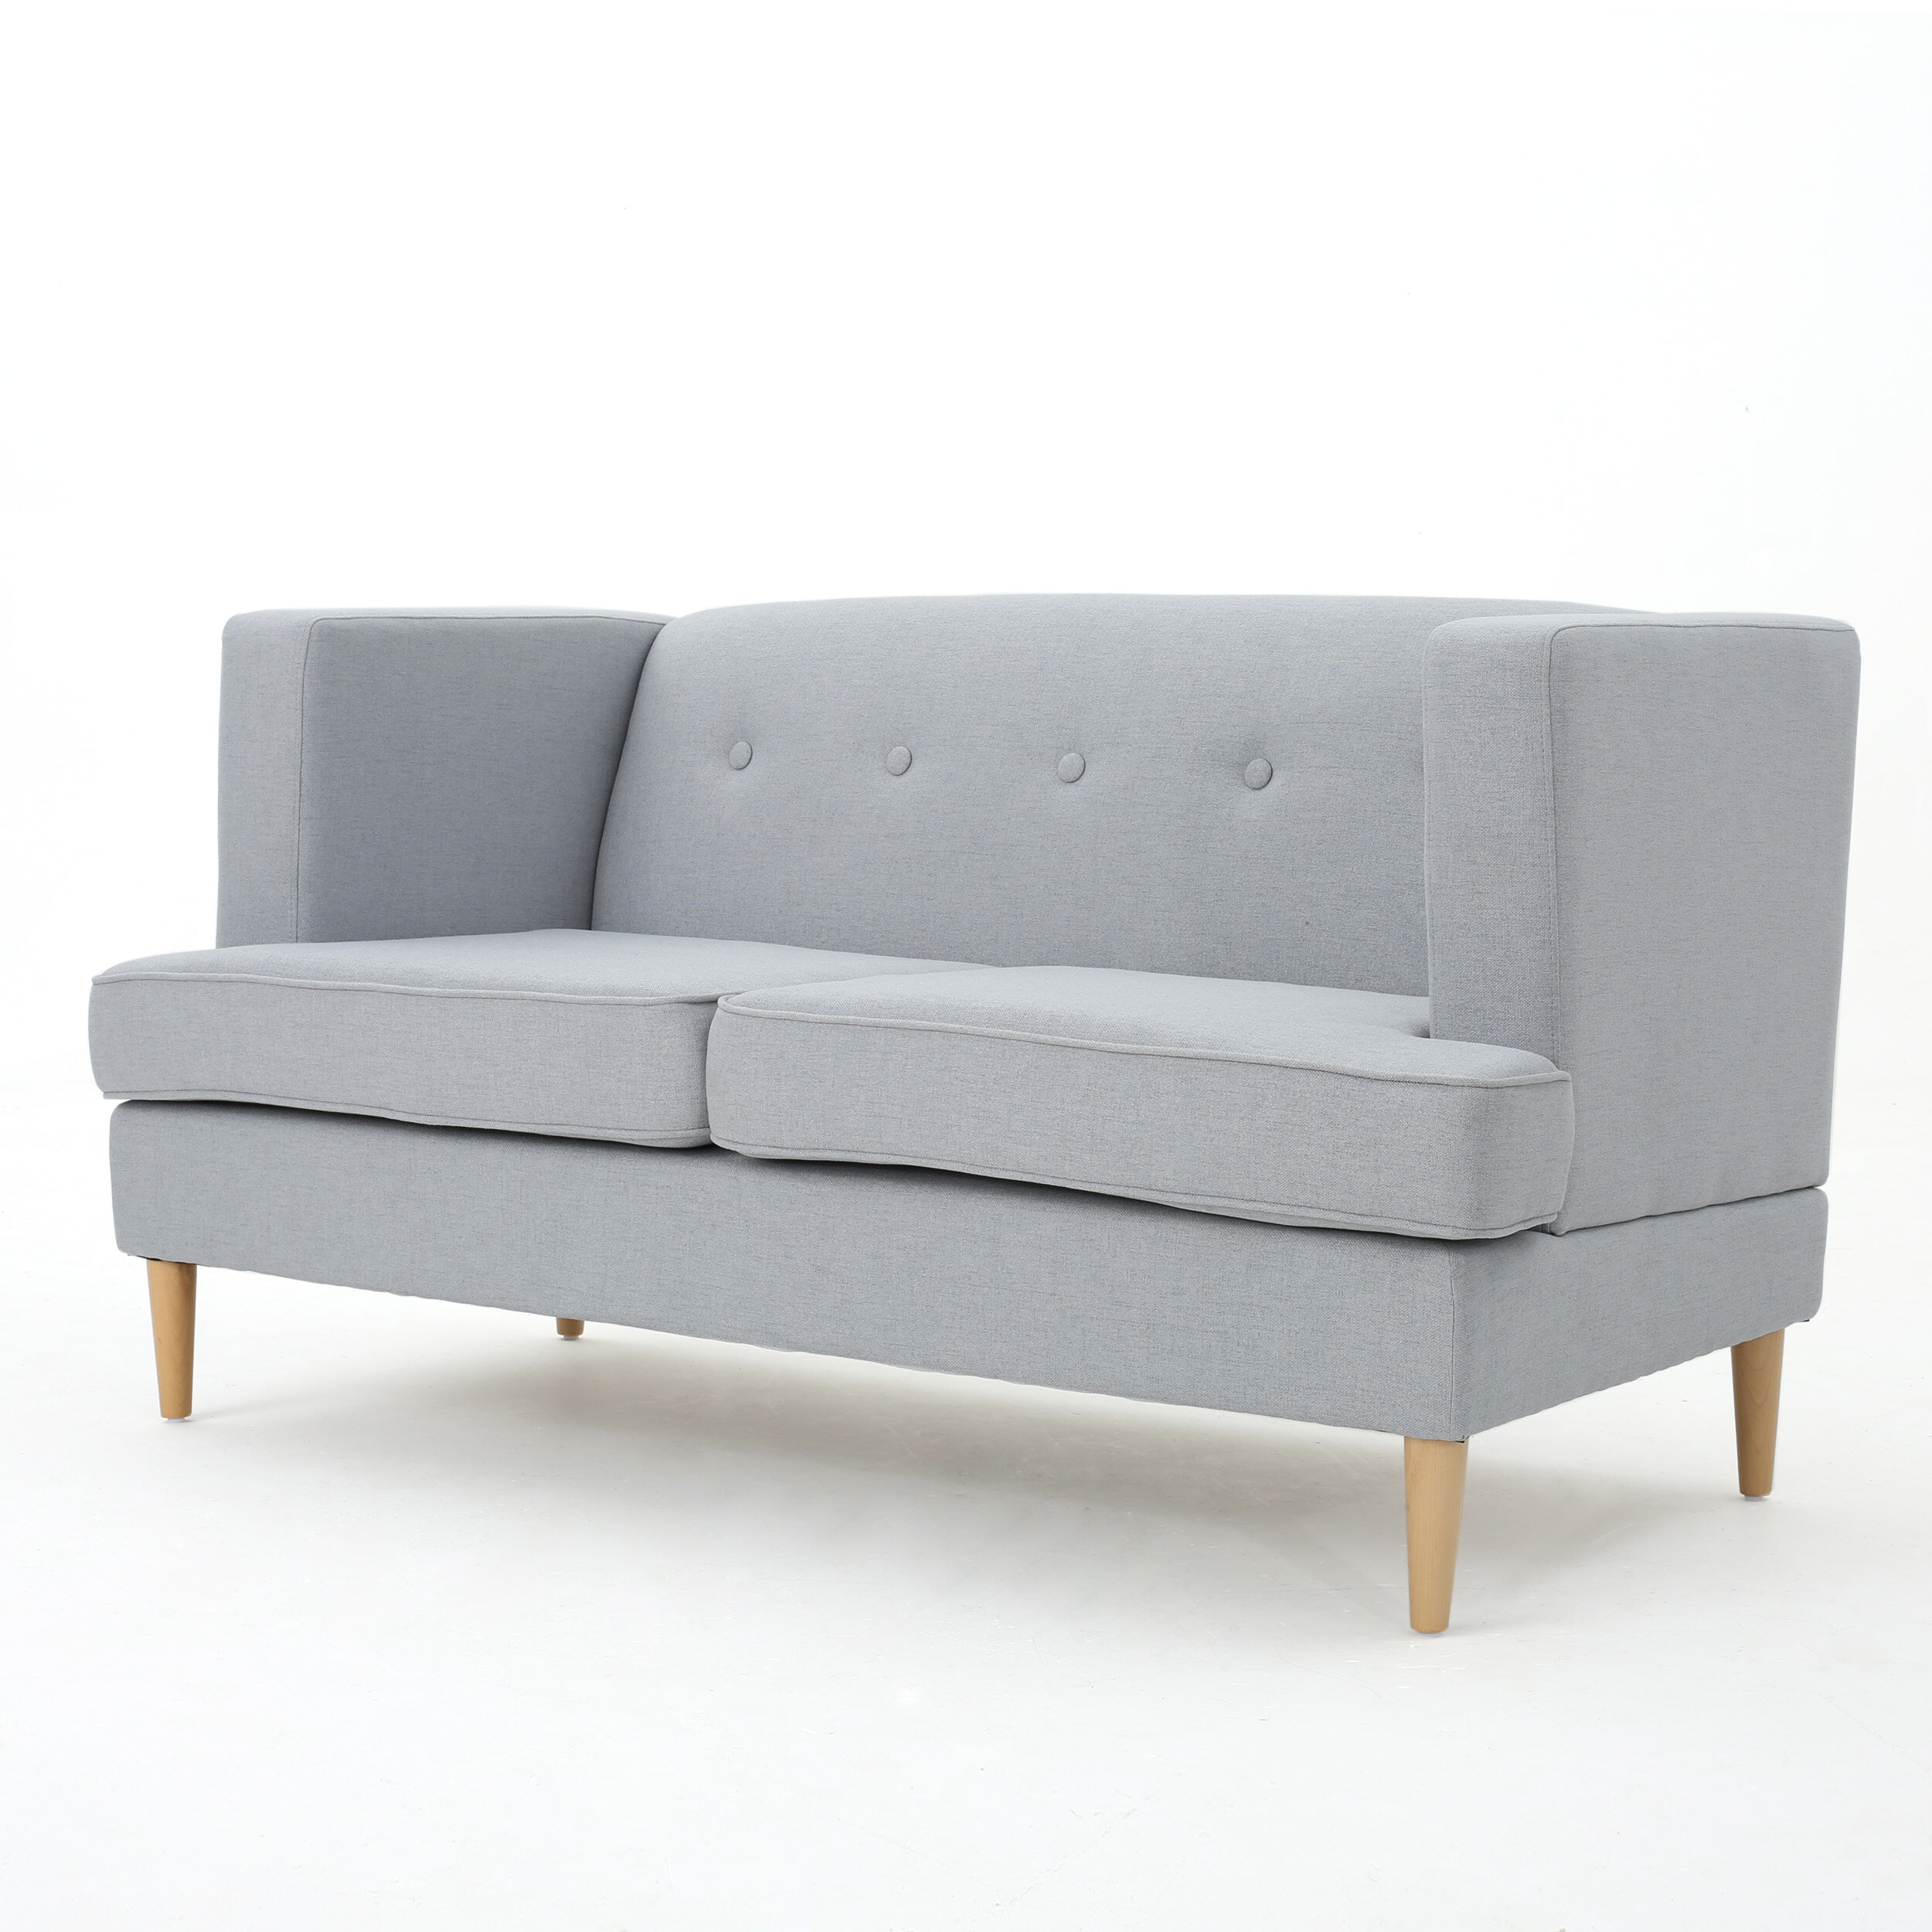 grey fabric in love furniture loveseats modern living sofas style contemporary dark loveseat minimalist chairs seat room and